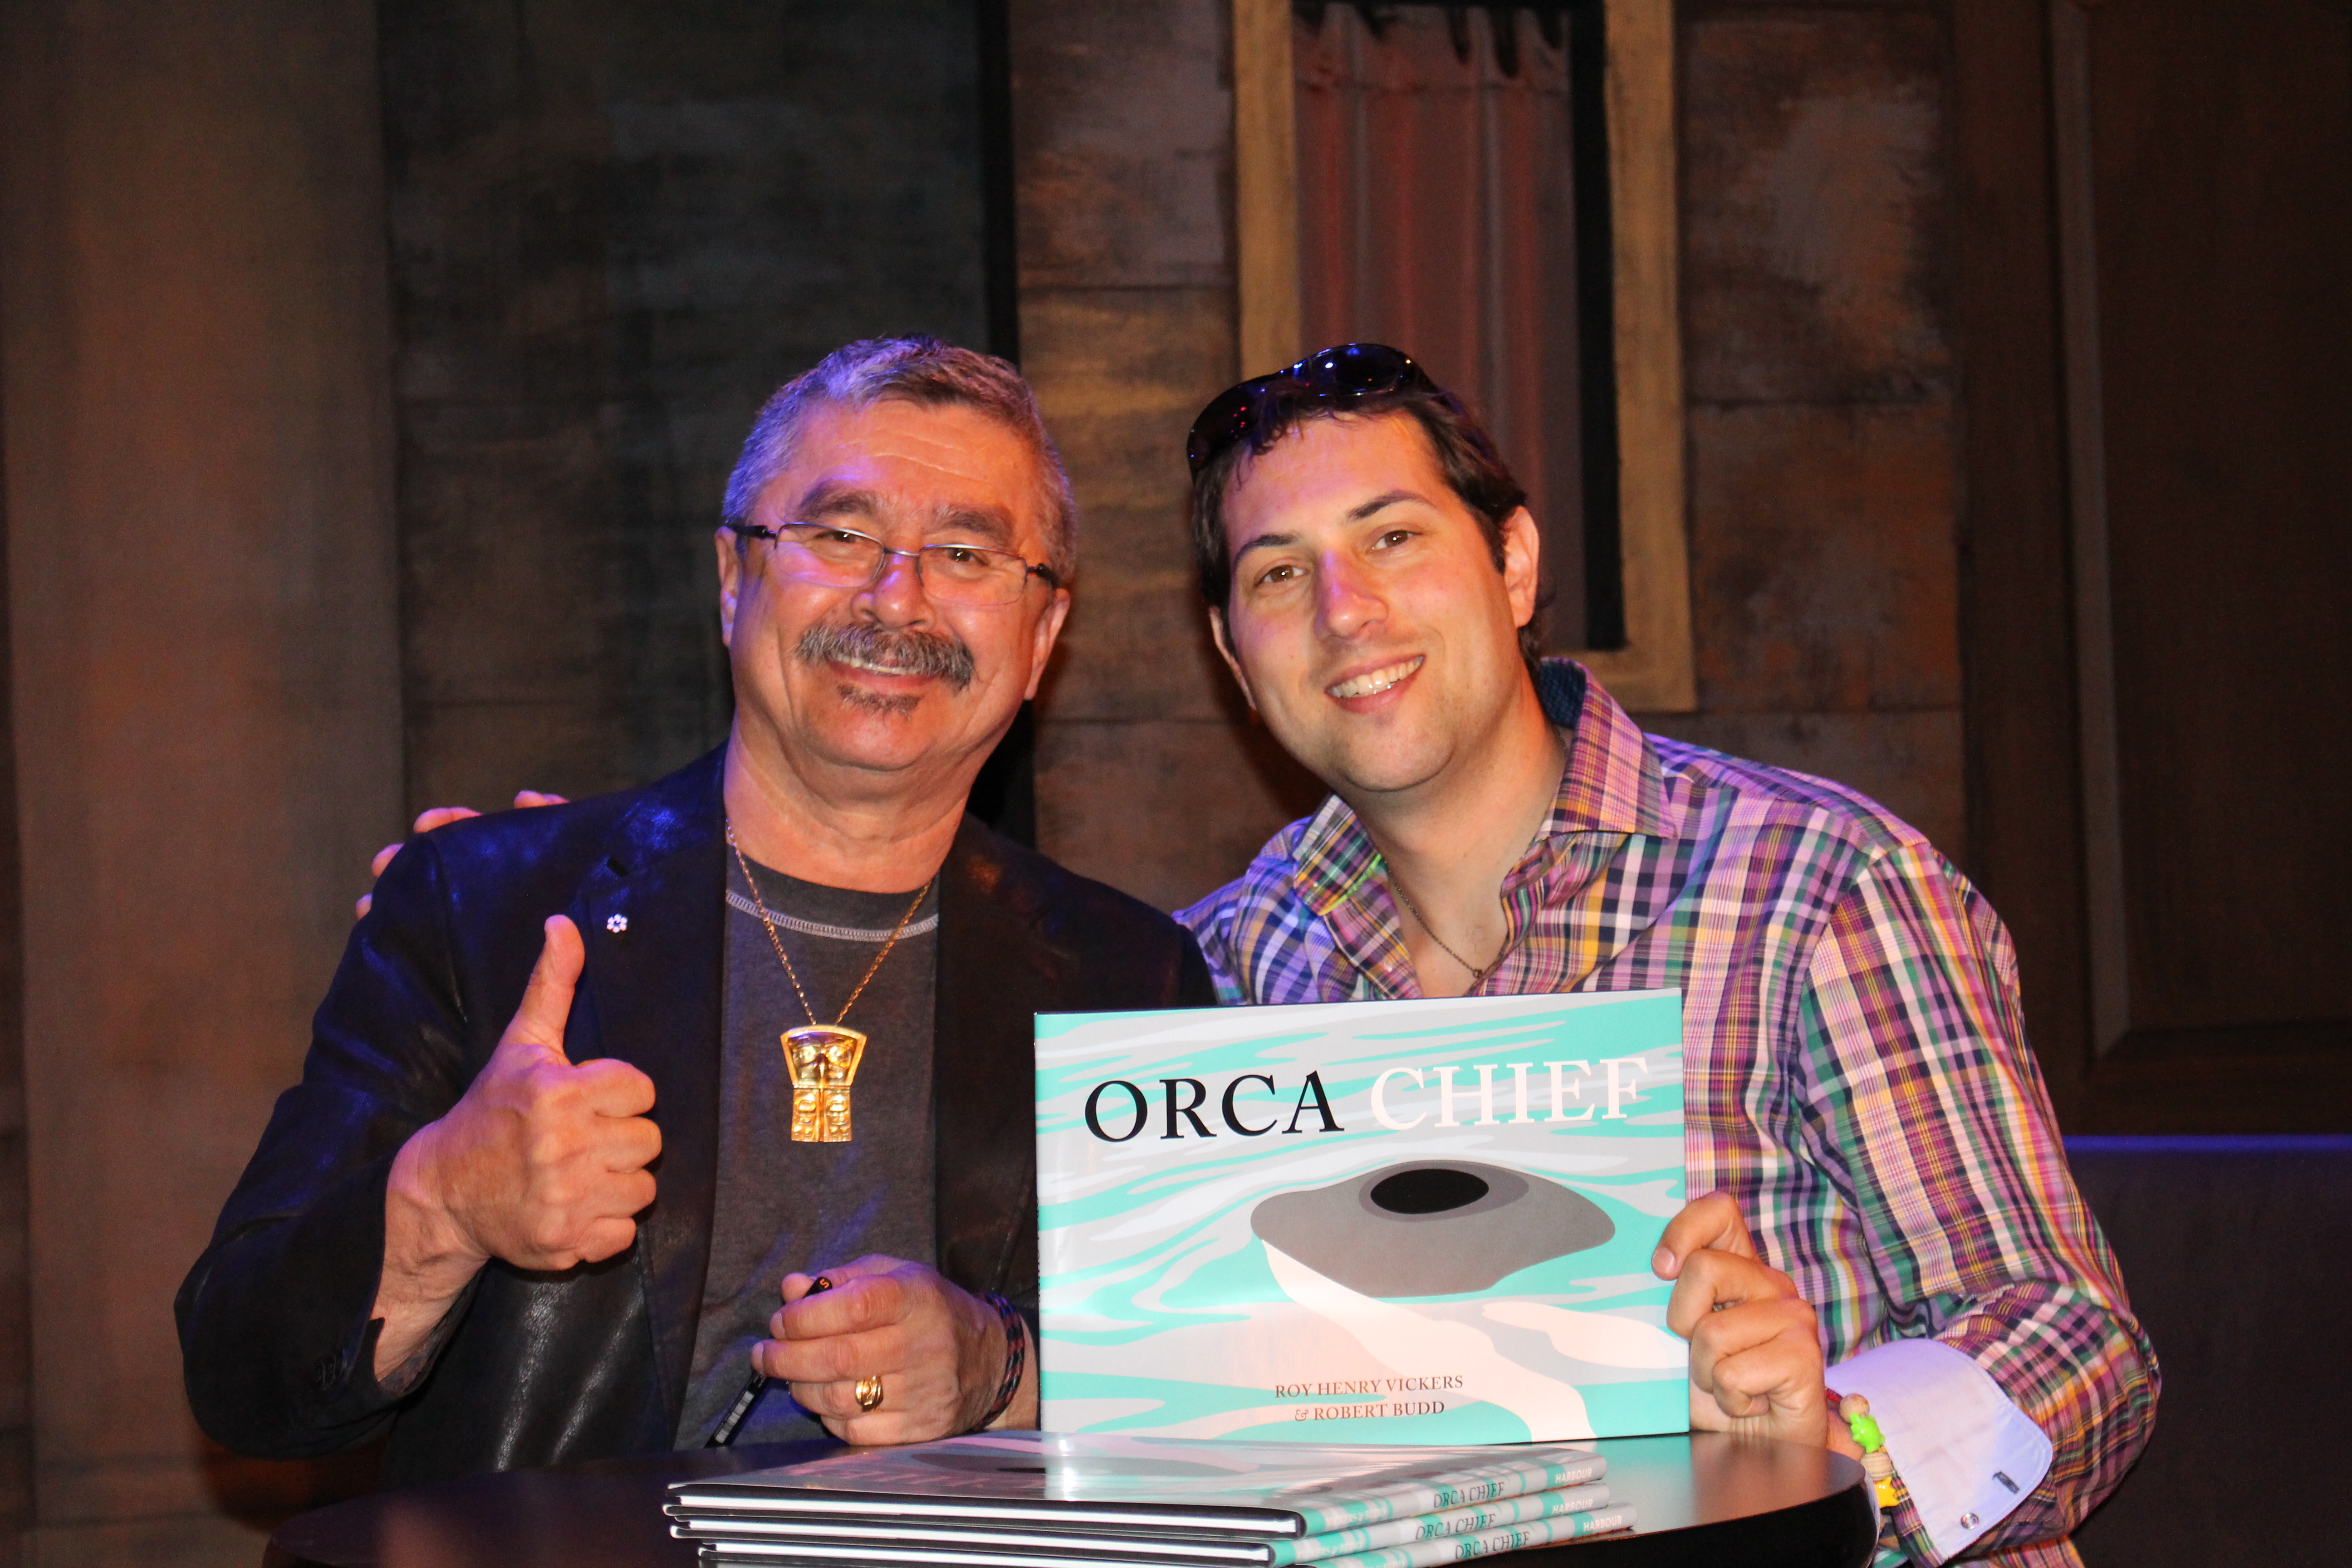 This photo was taken at the Orca Chief book launch in Vancouver May 9, 2015